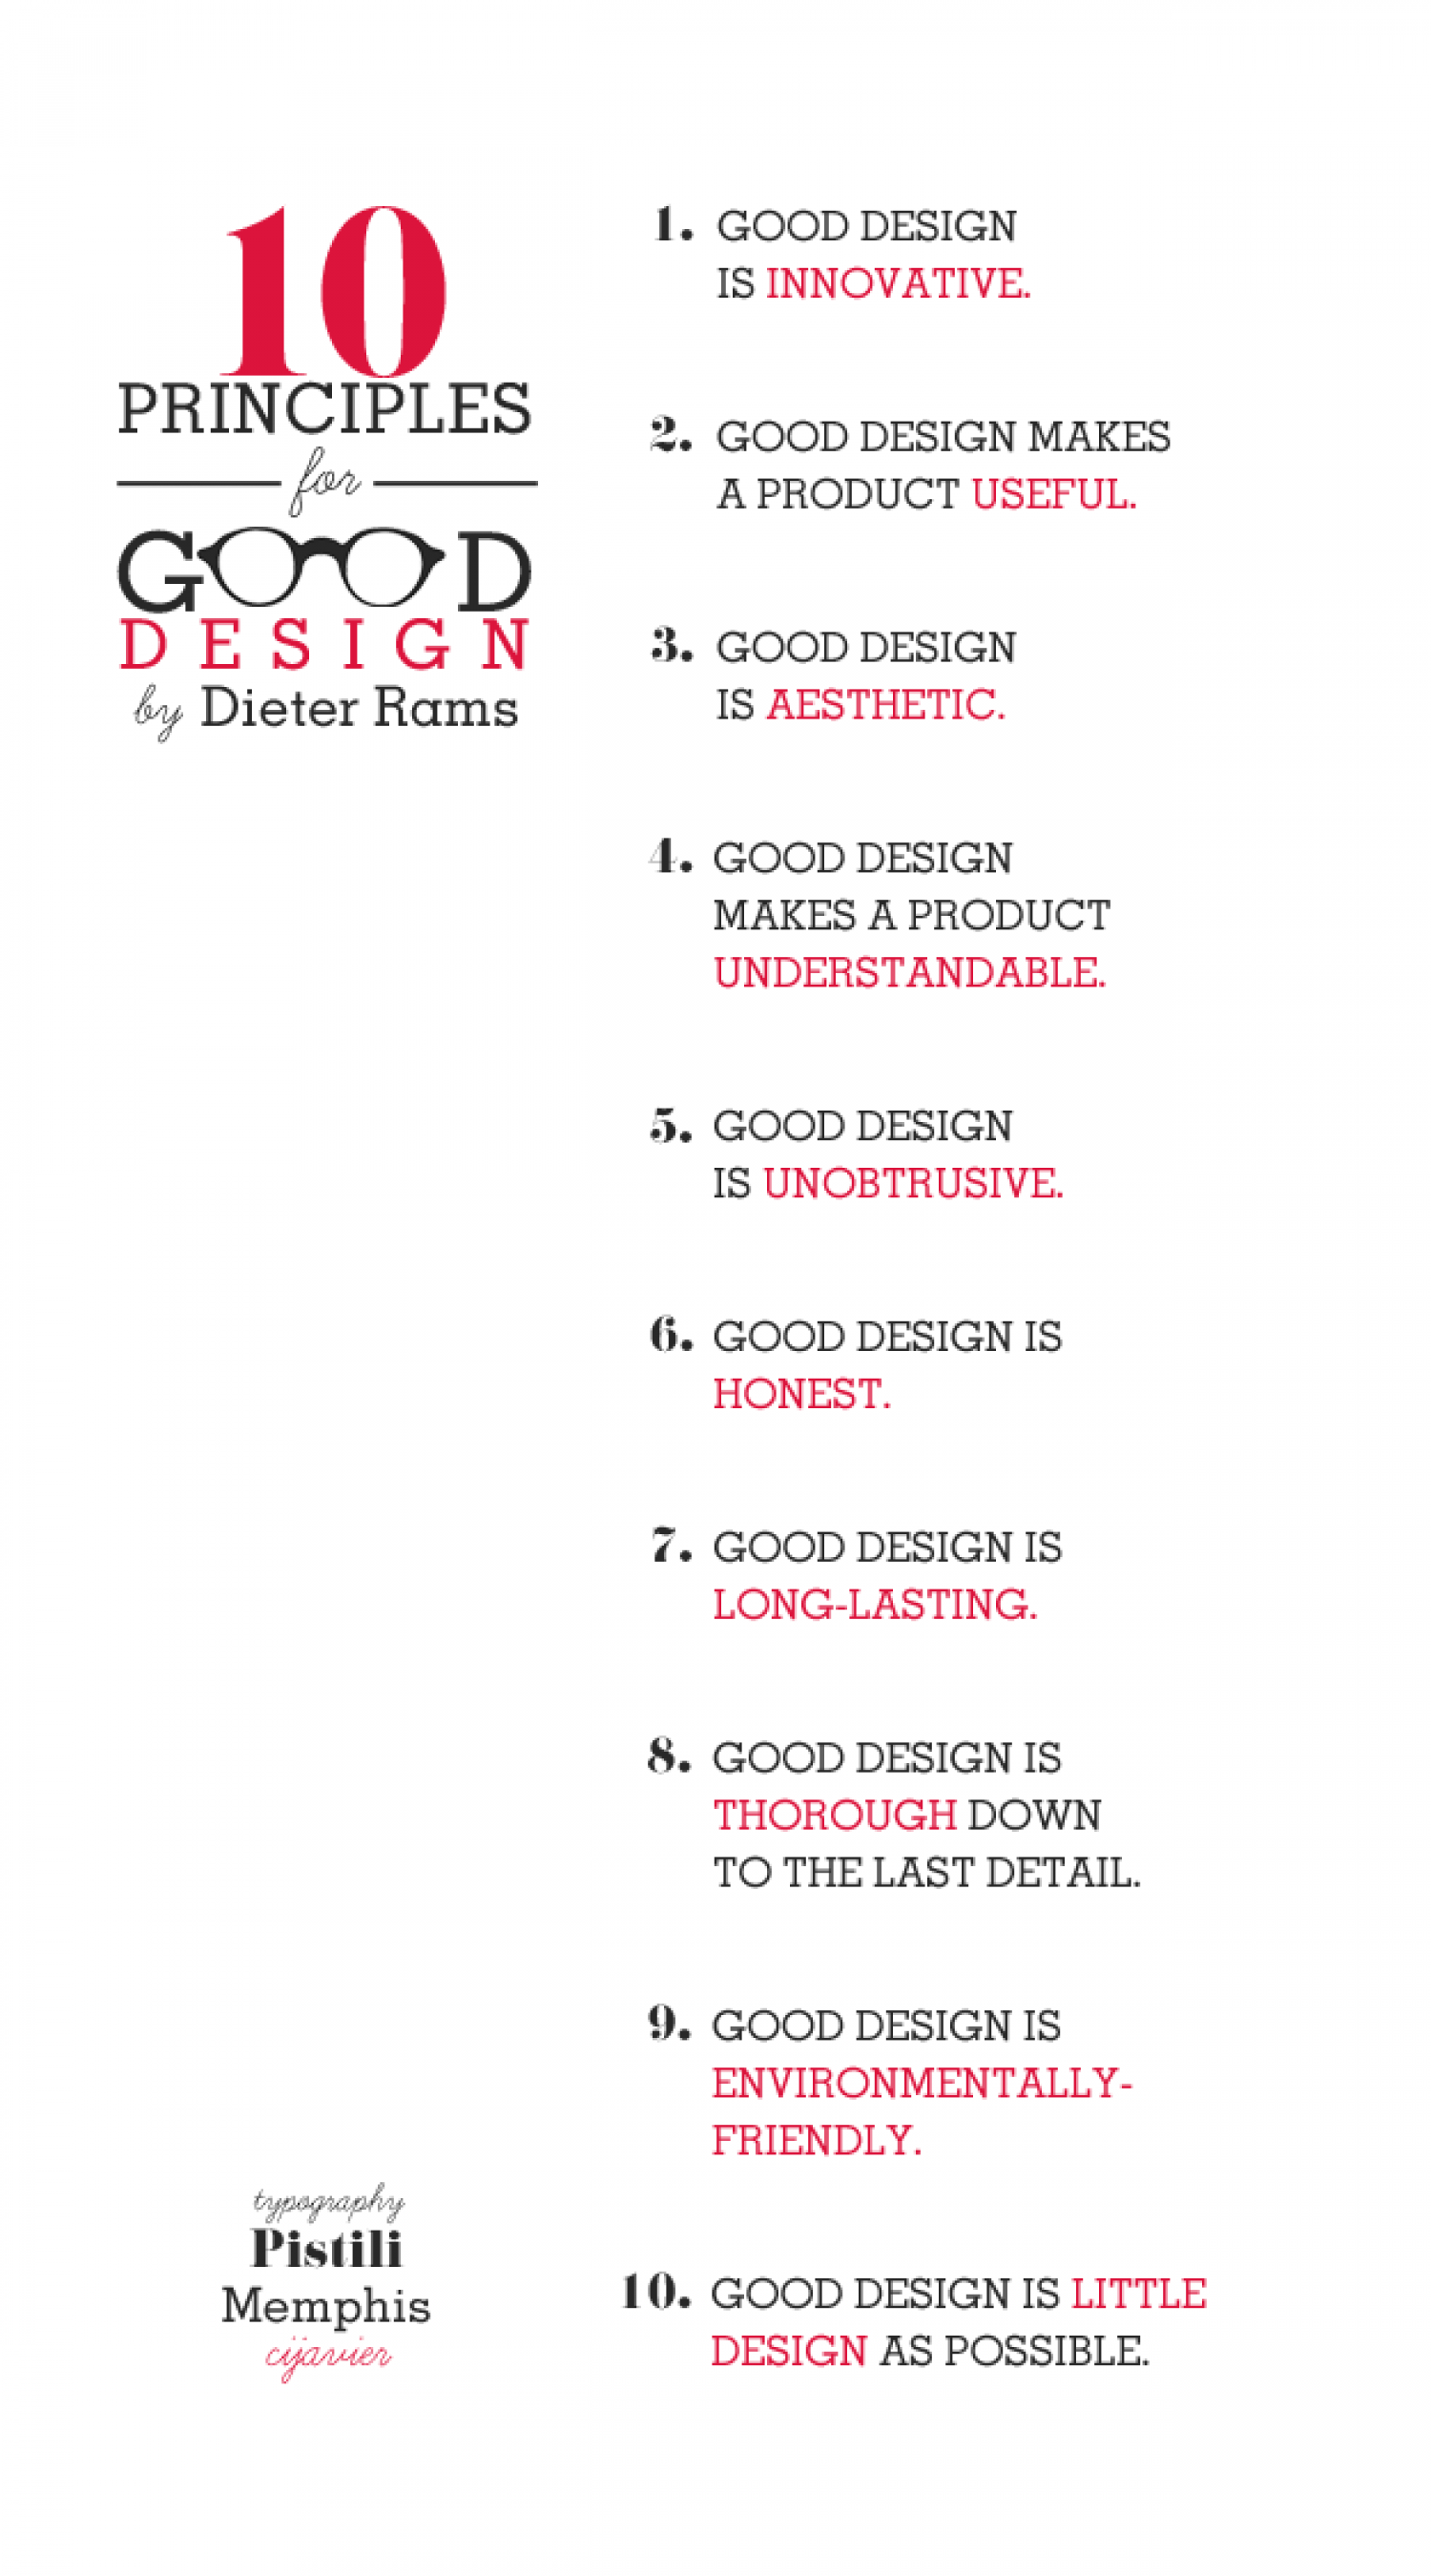 10 Principles for Good Design Infographic